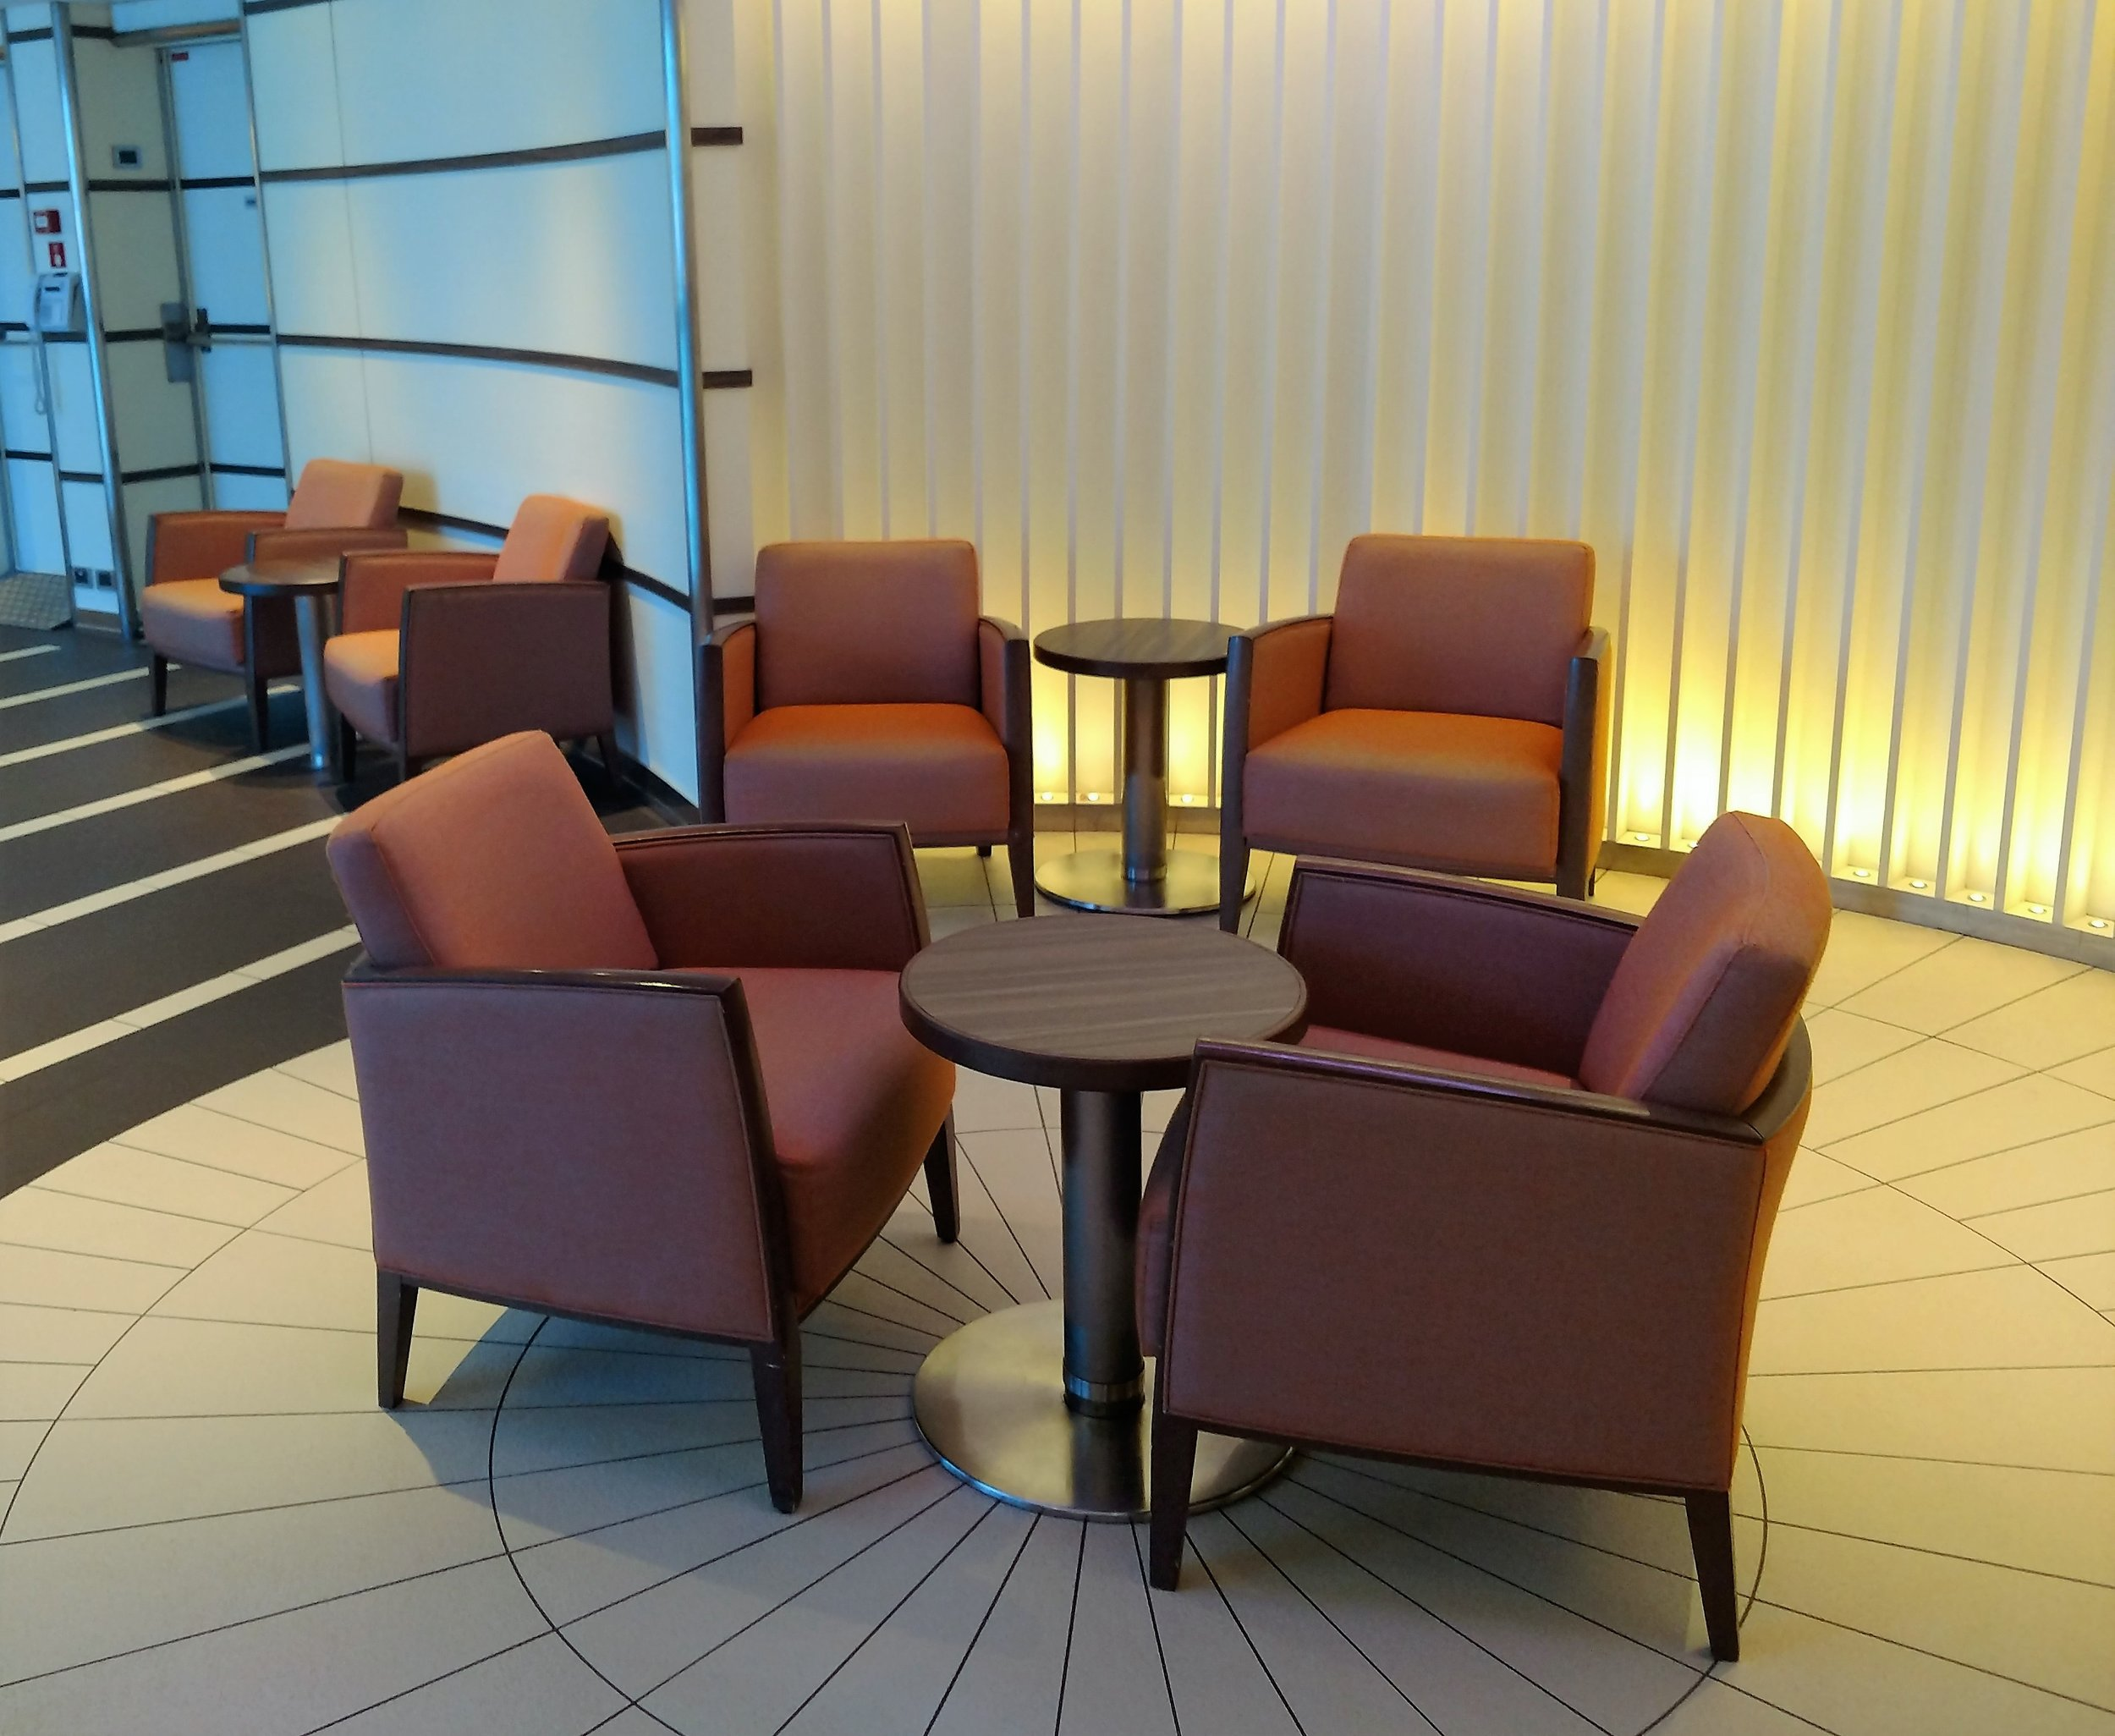 One of many seating areas found throughout the ship.